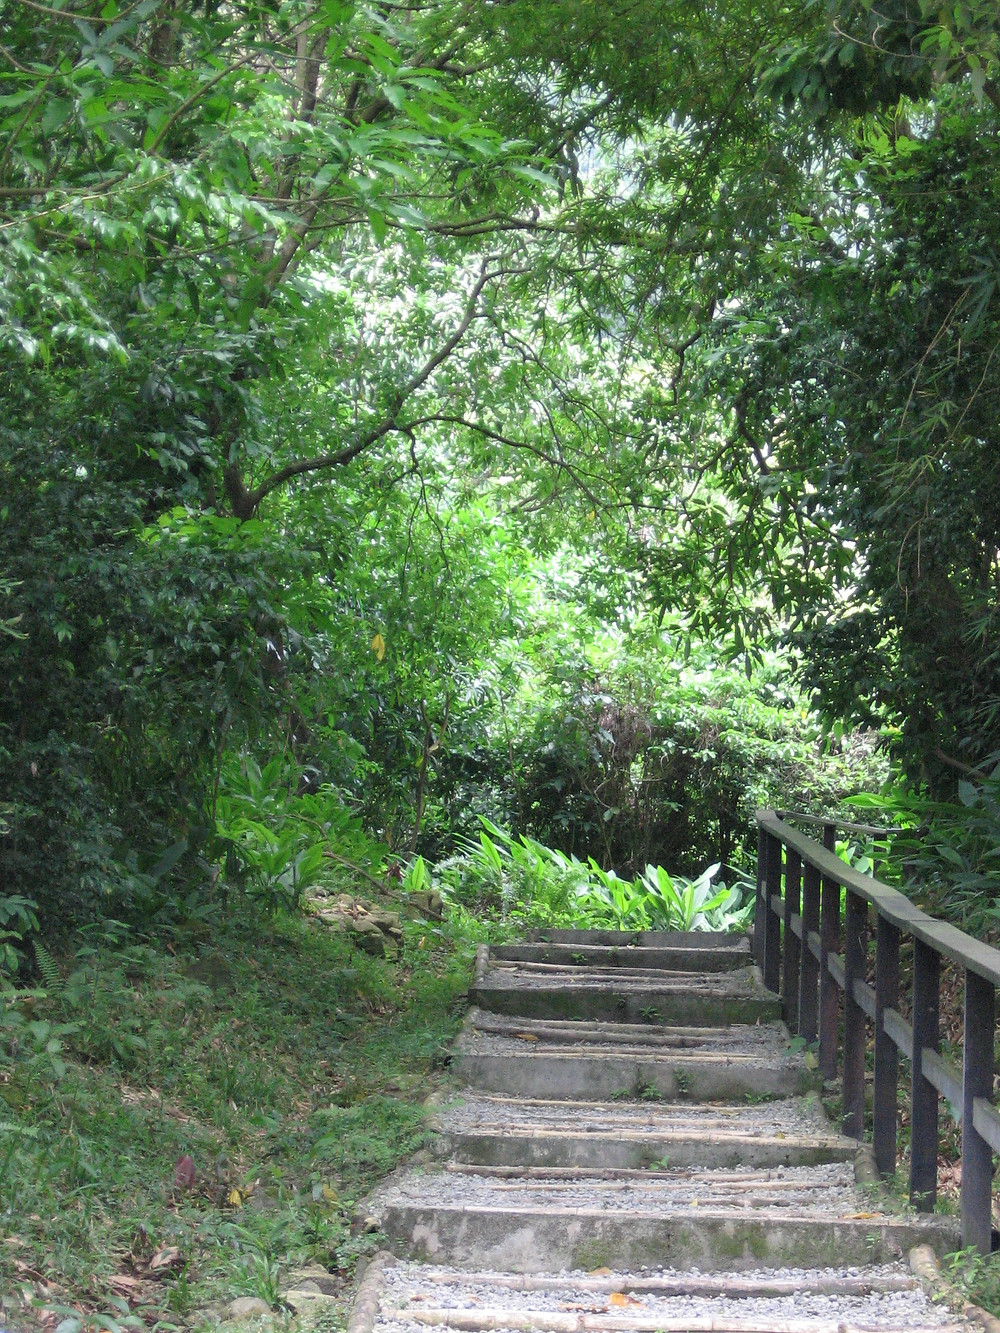 Finding your path. My path through botanical gardens in Soufriere, St. Lucia.